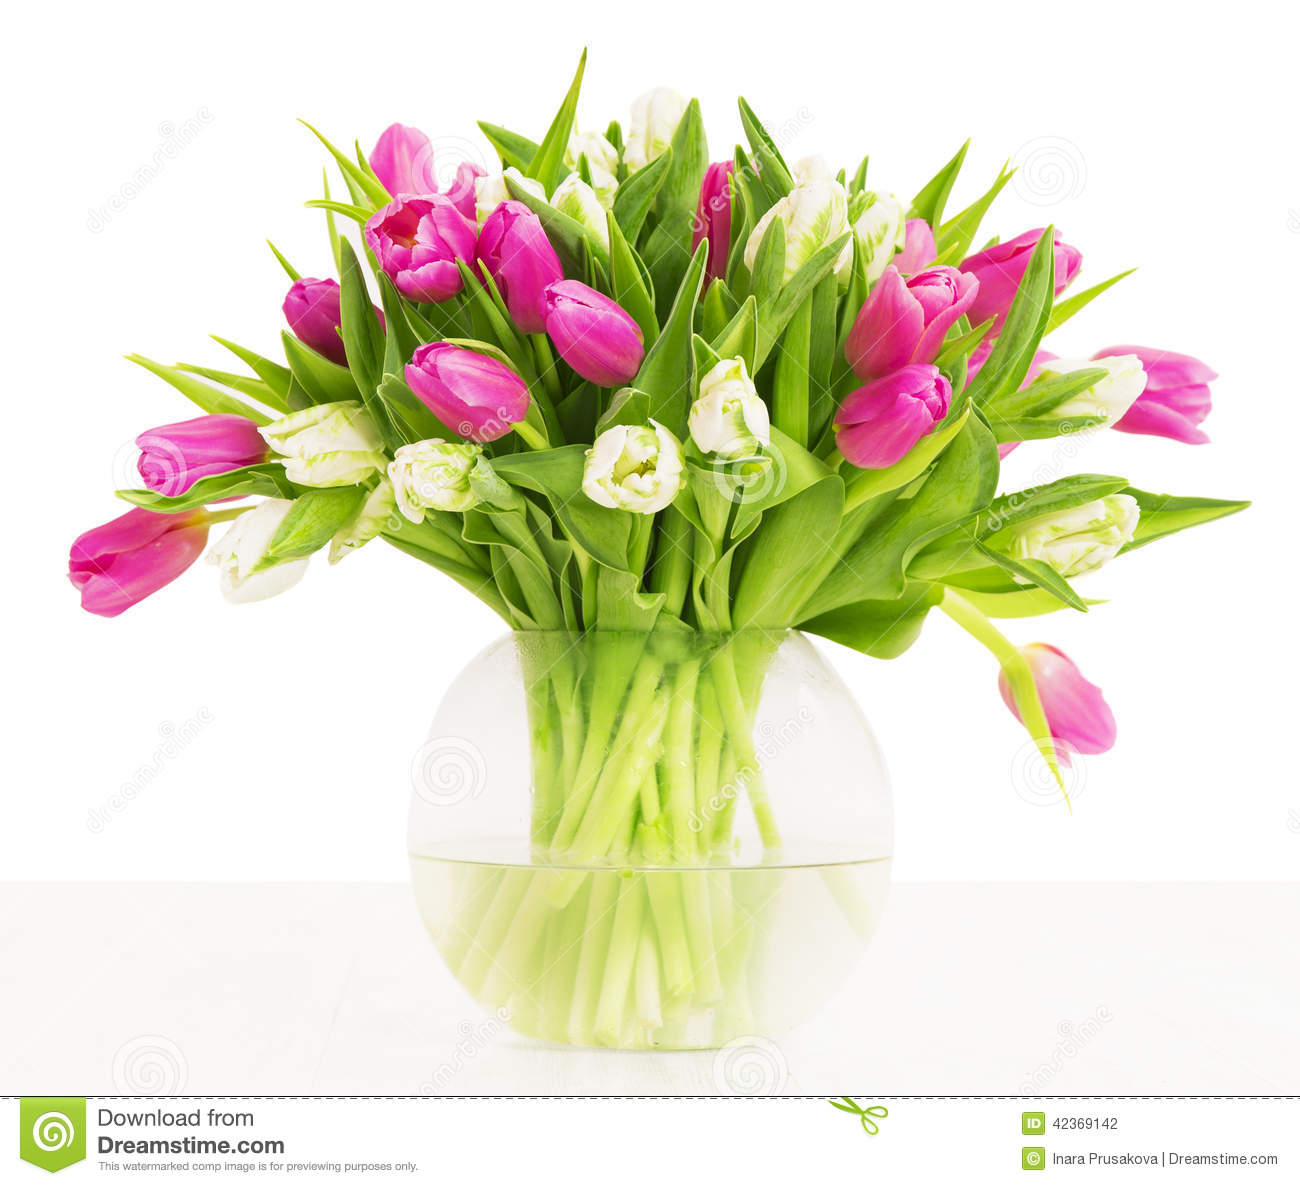 Tulips Flowers Bouquet In Vase White Background Stock